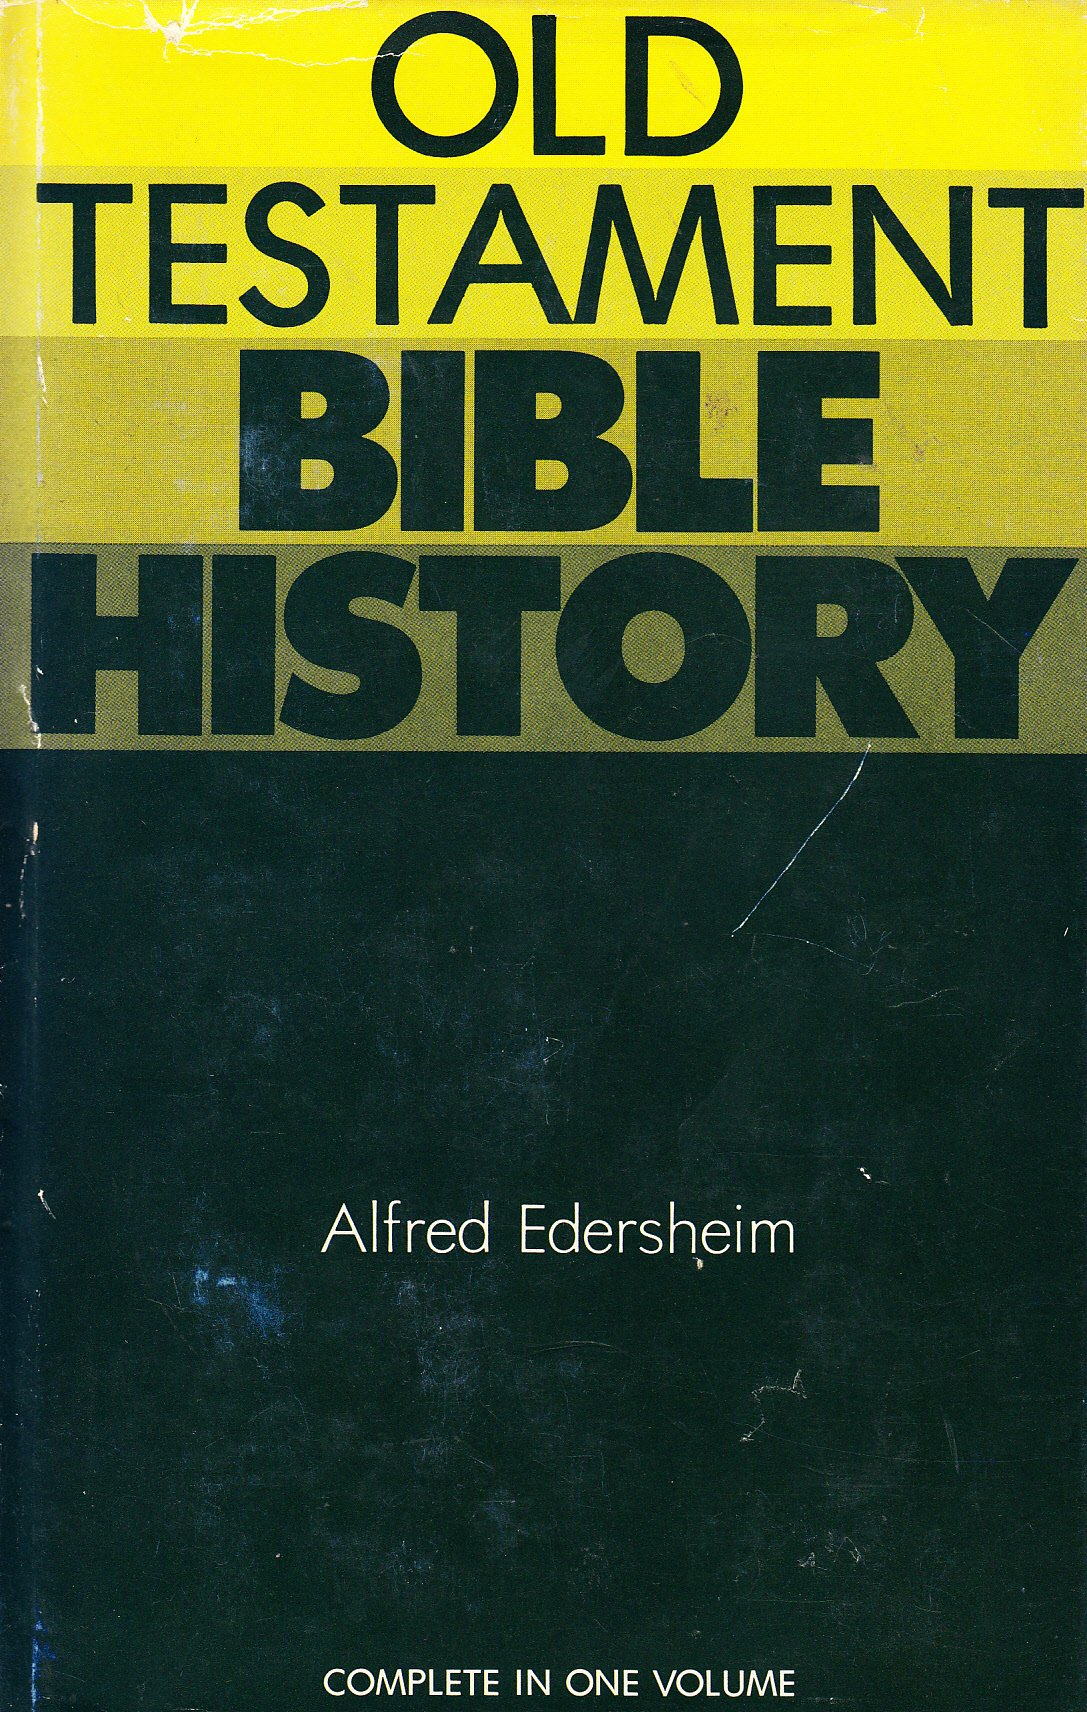 Old Testament Bible History, Edersheim, A.